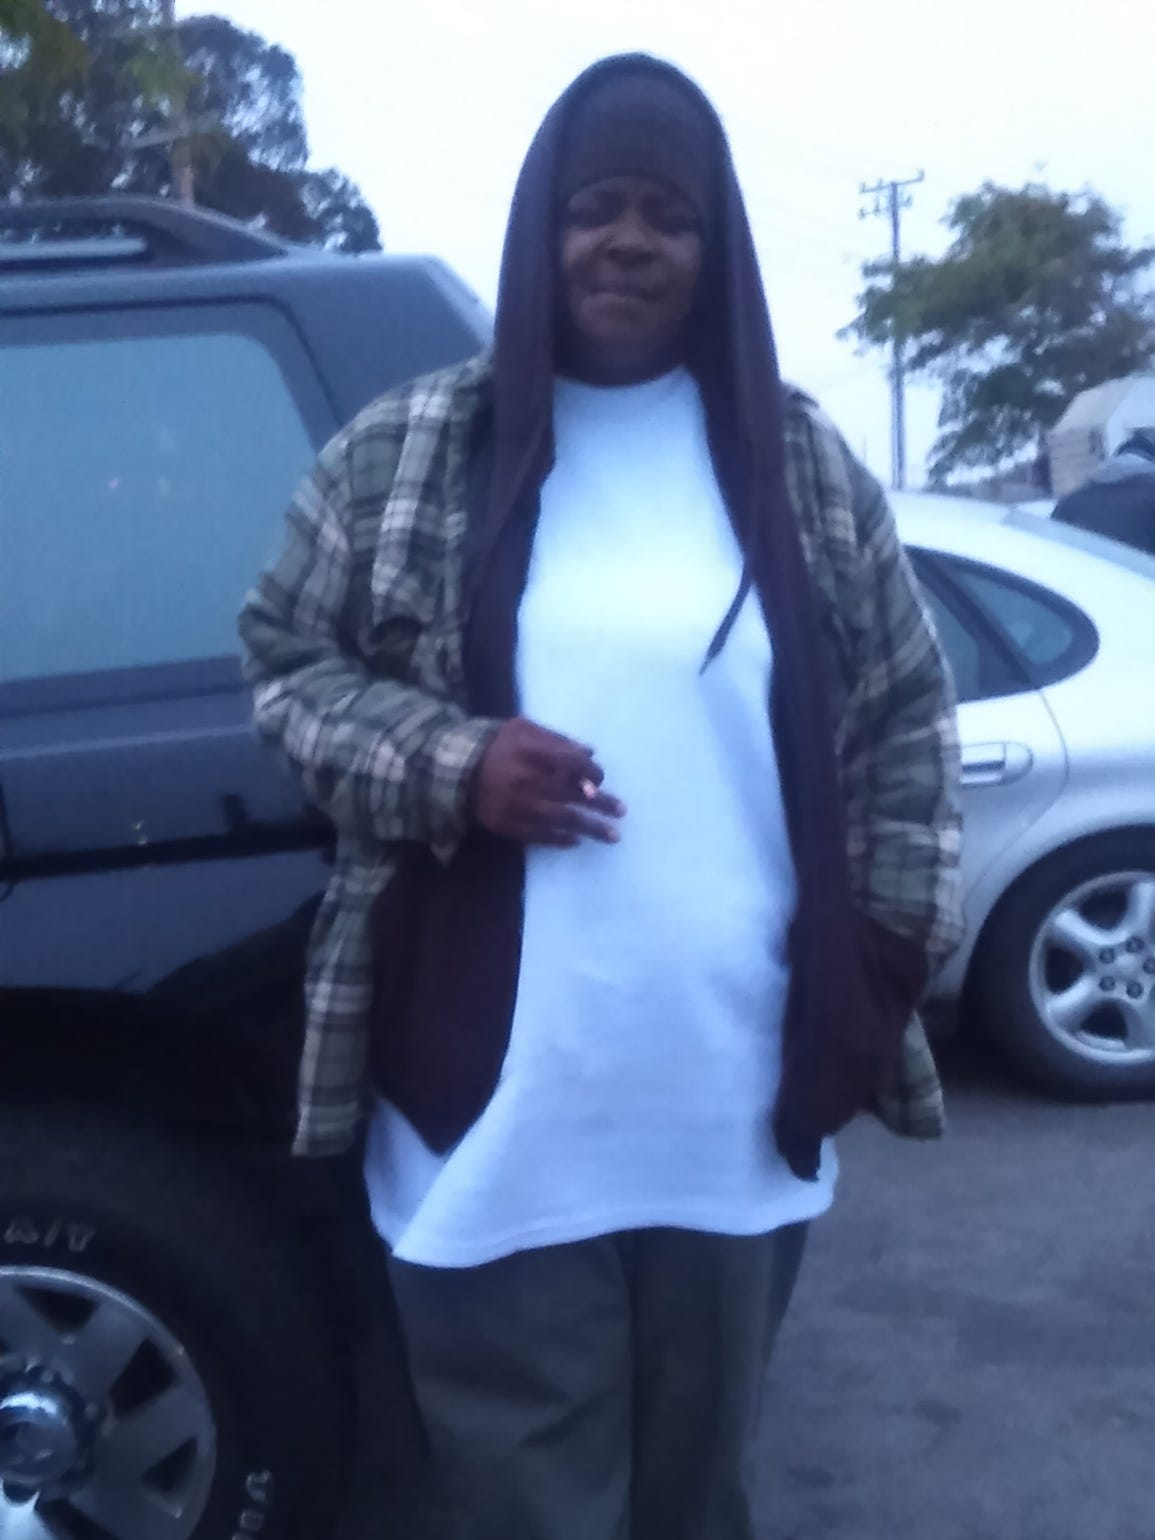 Yolanda Harraway used and sold drugs on the streets